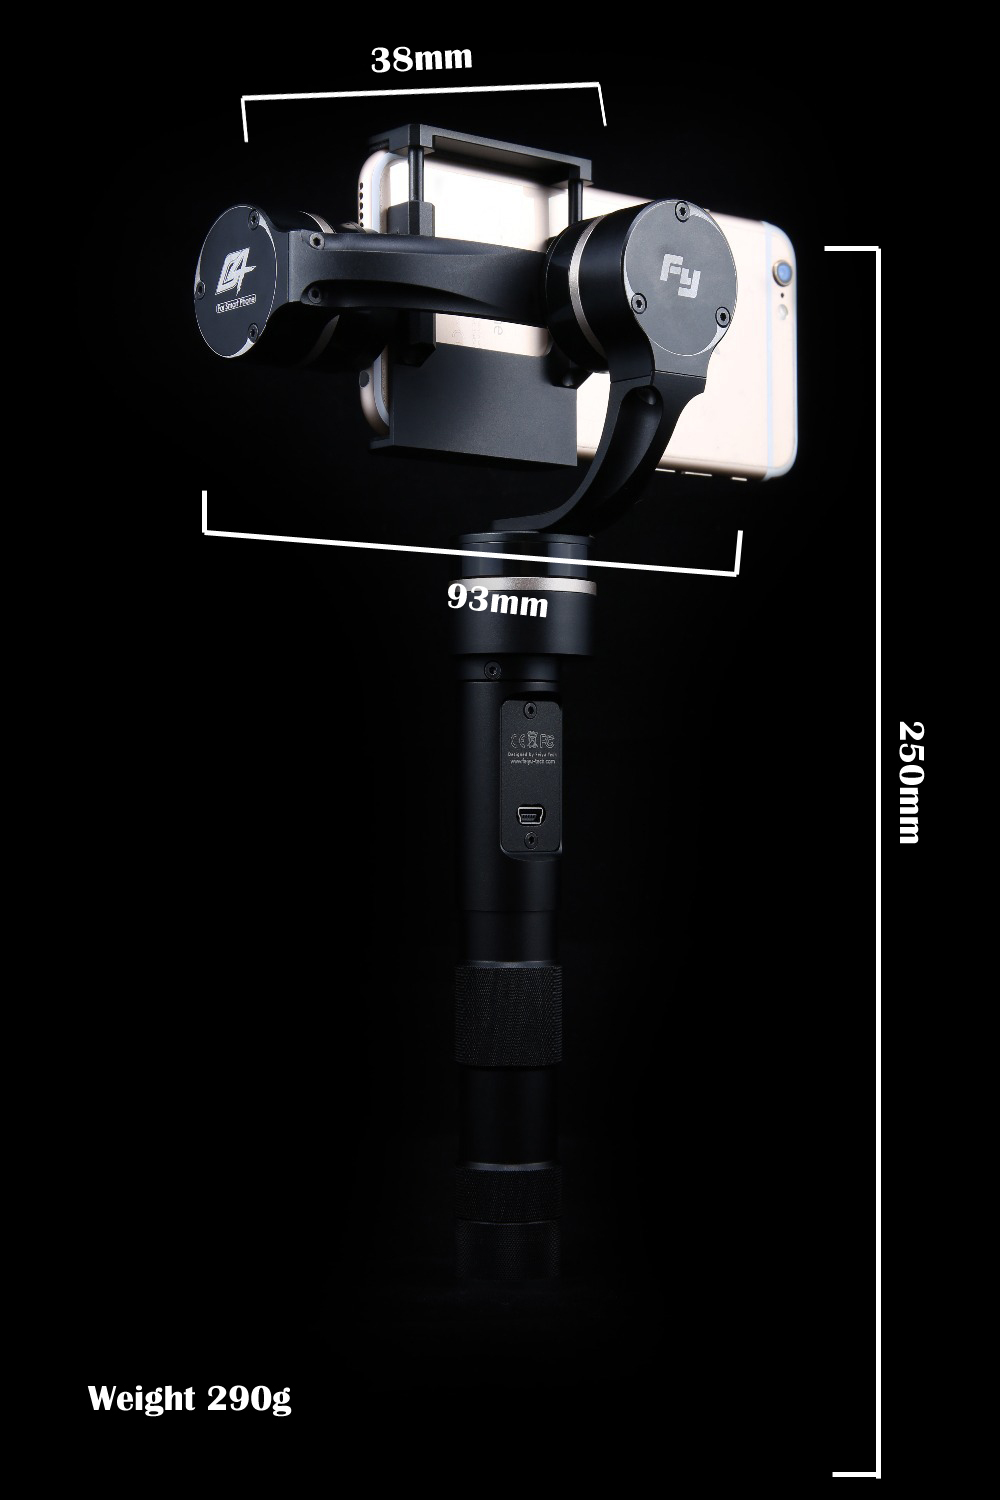 Feiyu FY-G4 3-Axis Gimbal/stabilizer for smartphone